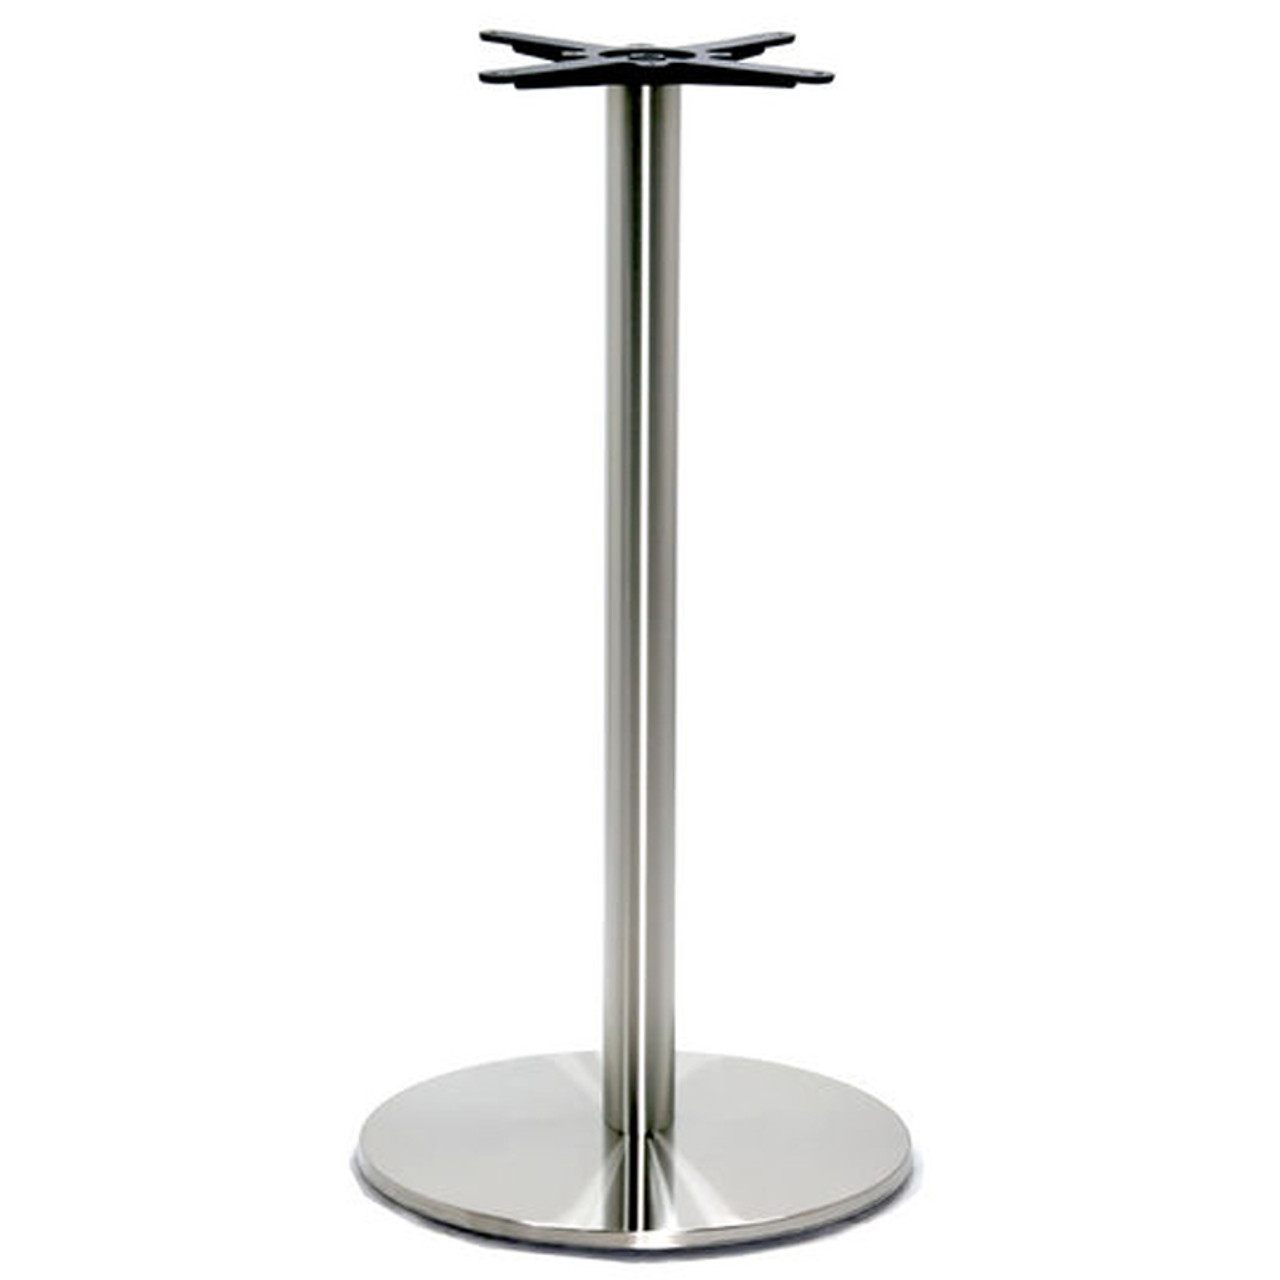 "Round Table Base, Brushed Stainless Steel, 42-1/2"" height, 30"" round base, 3""diameter steel column - replacementtablelegs.com"